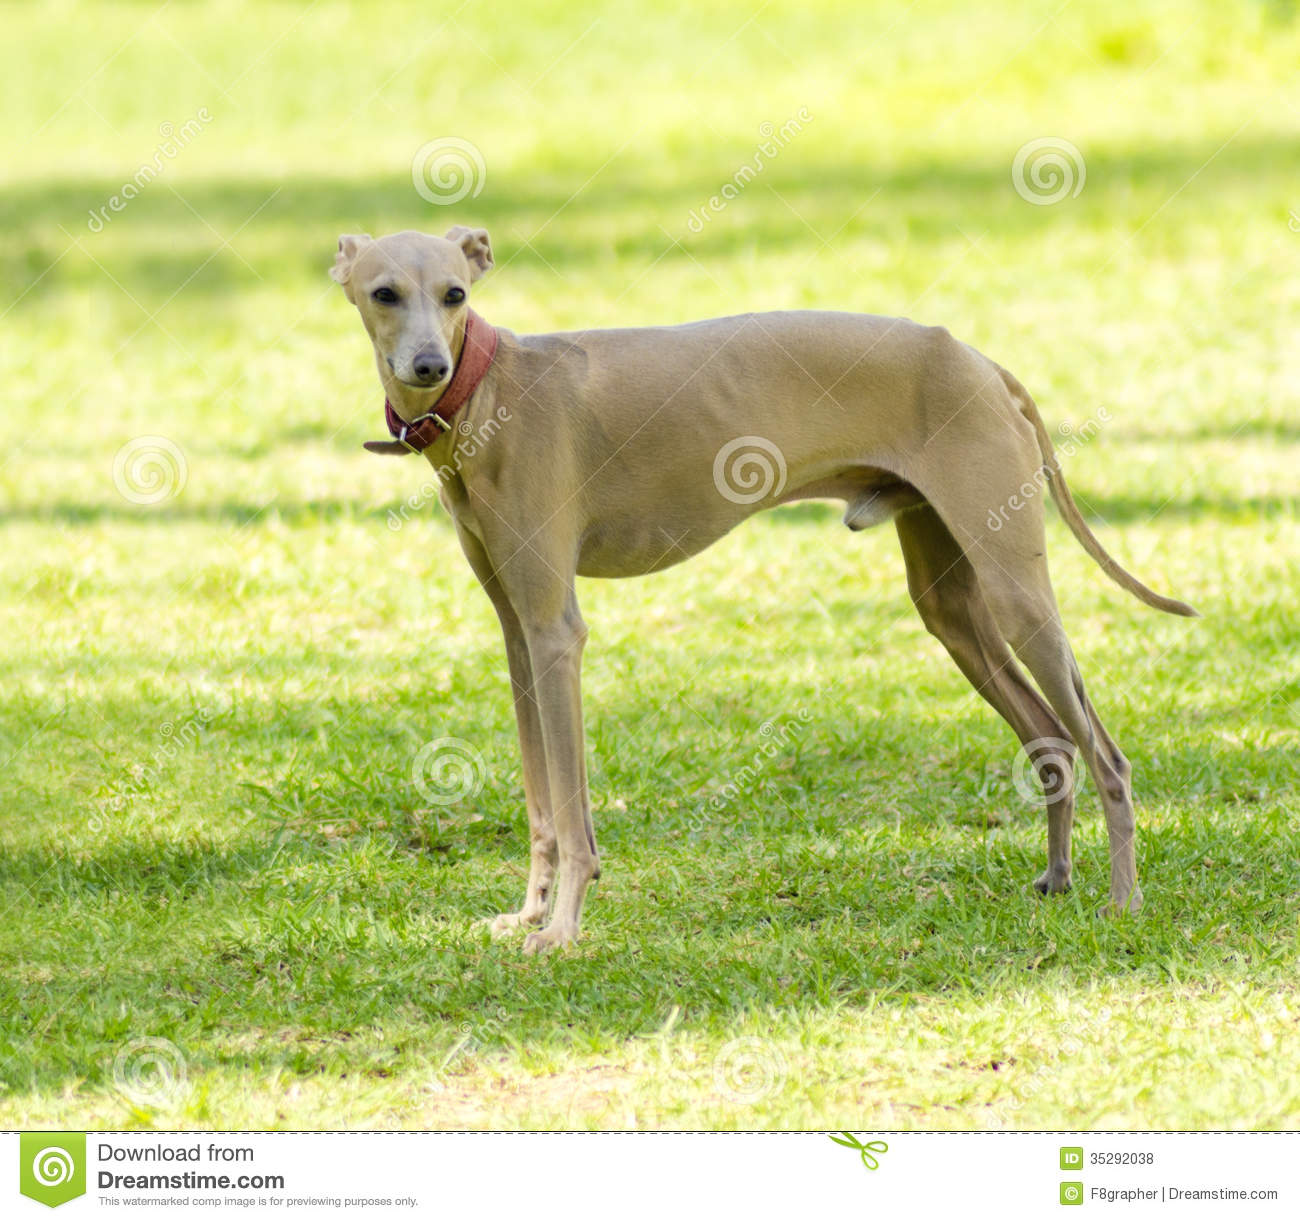 Small Fawn   Brown Italian Greyhound Dog Standing On The Lawn  Grey